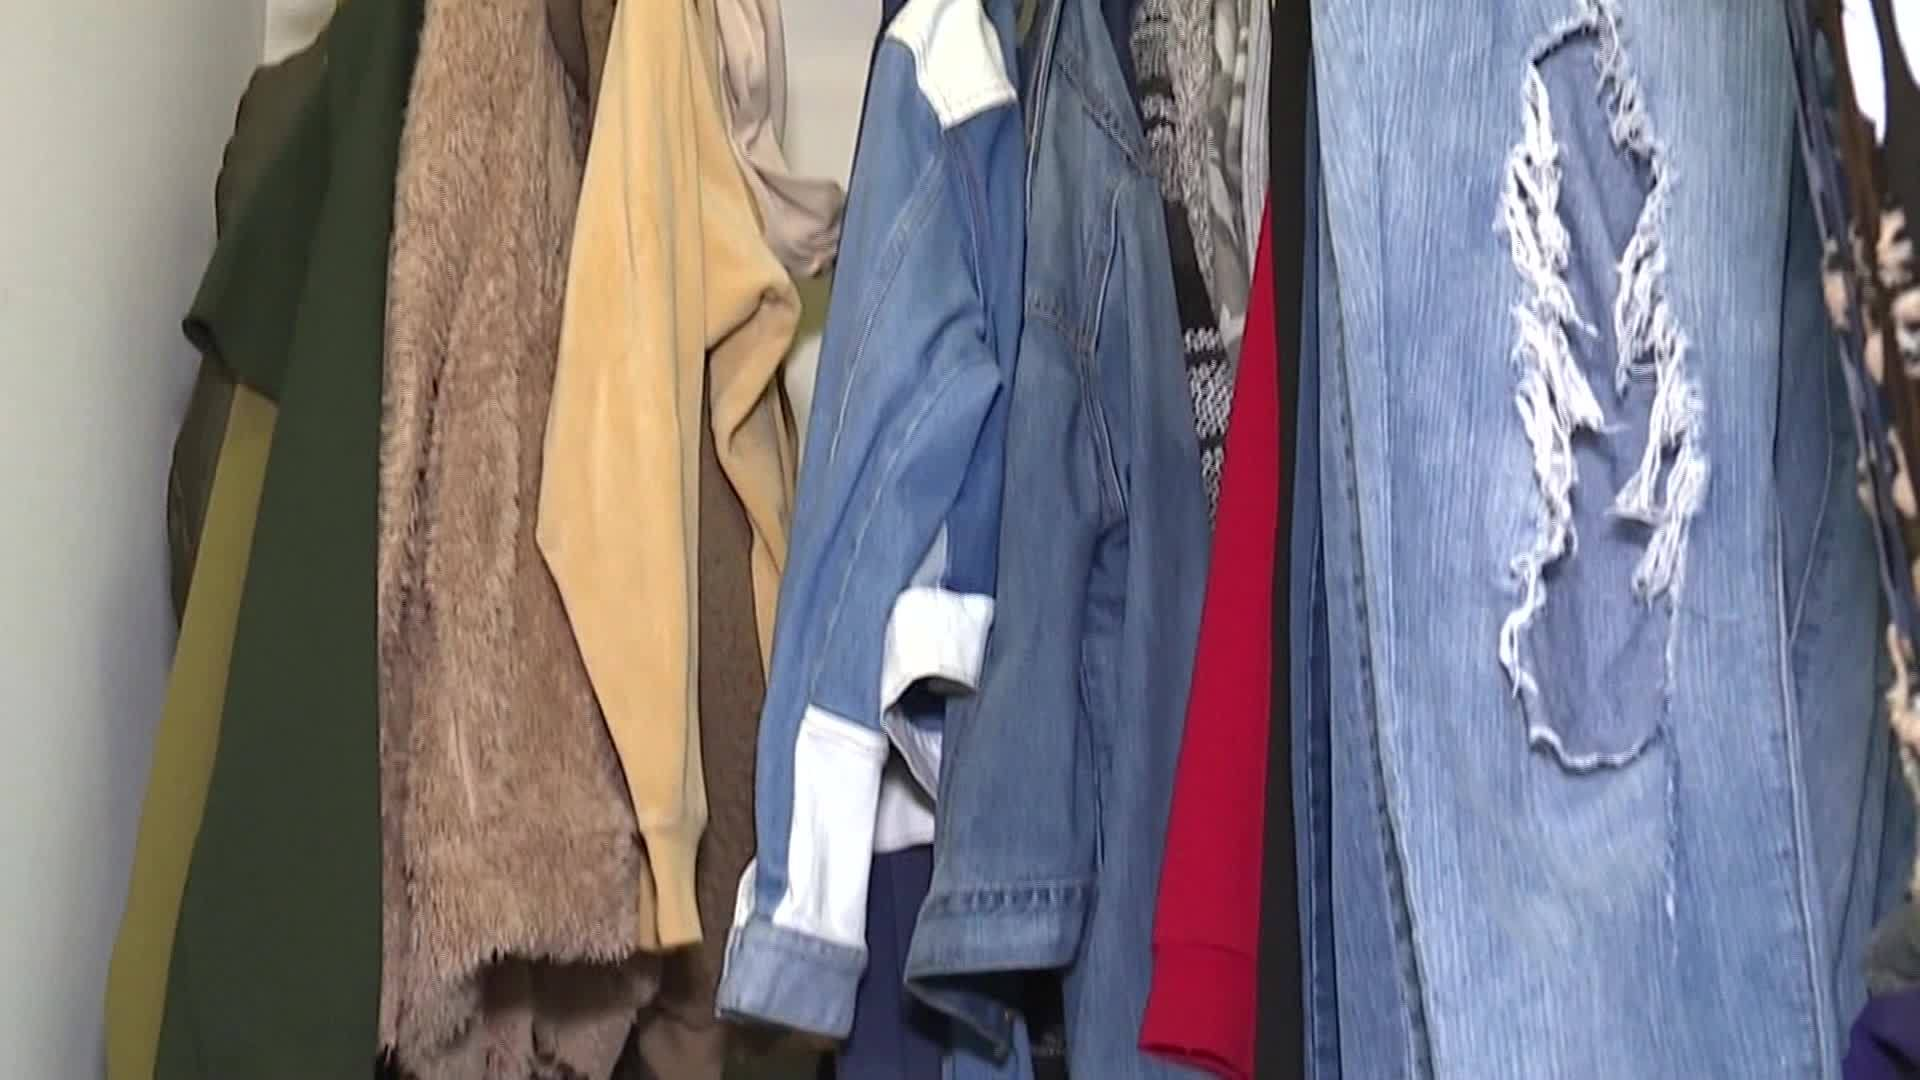 'Ghost' in woman's closet turns out to be intruder trying on her clothes